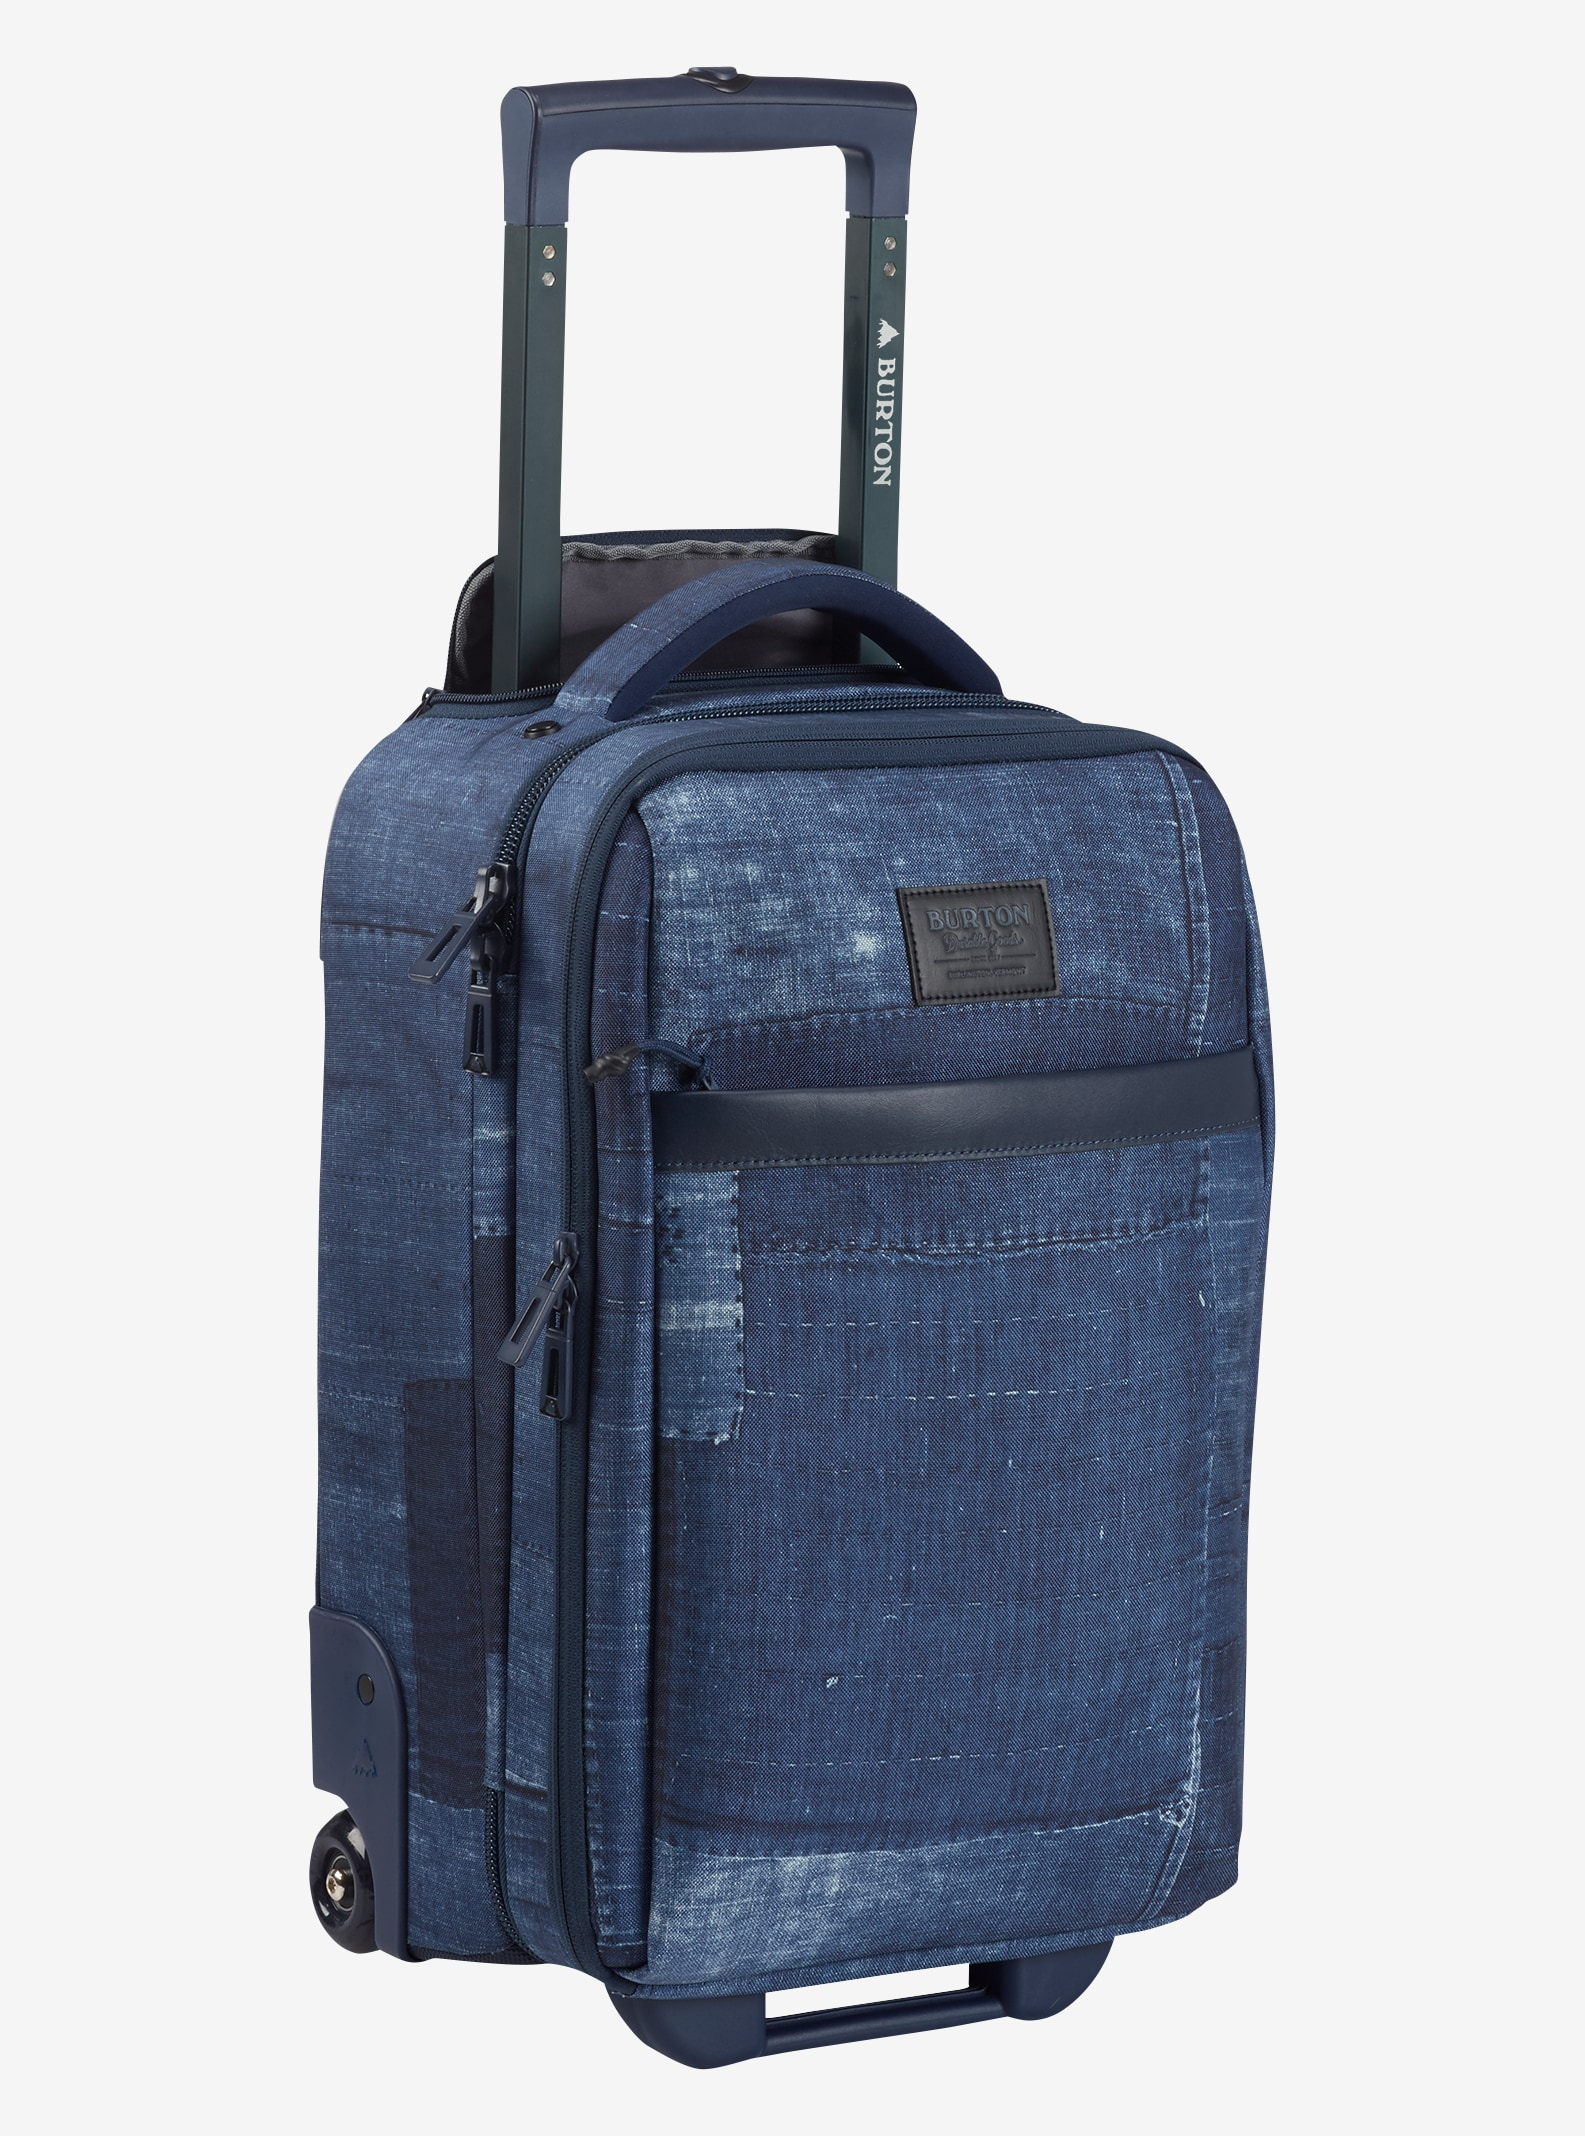 Burton Wheelie Flyer Travel Bag shown in Indiohobo Print